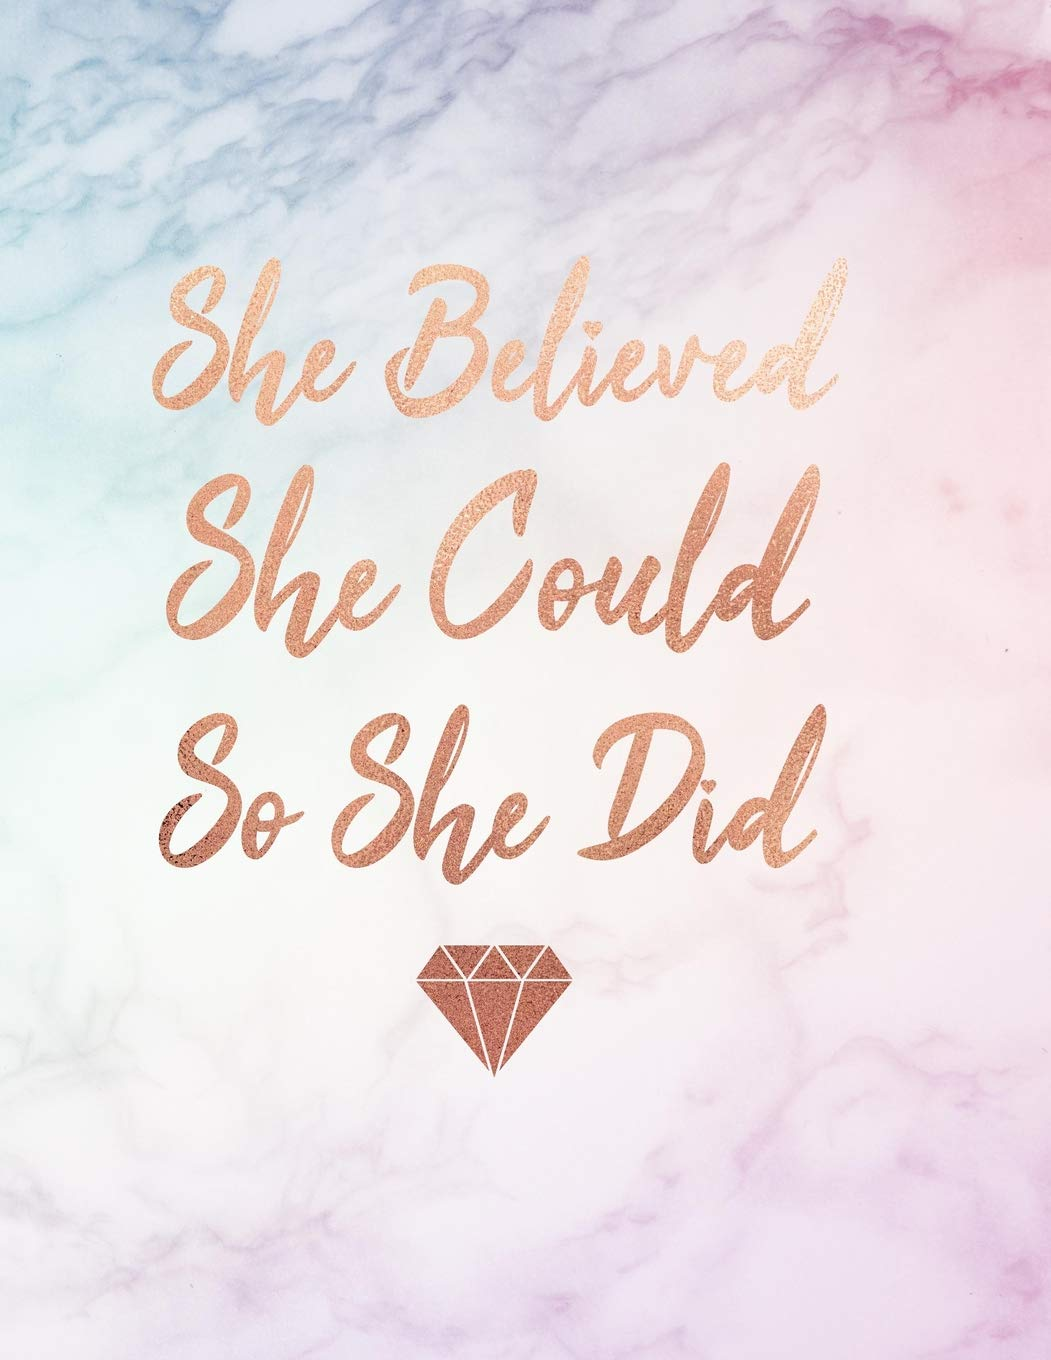 She Believed She Could So She Did - Life Motivational quote